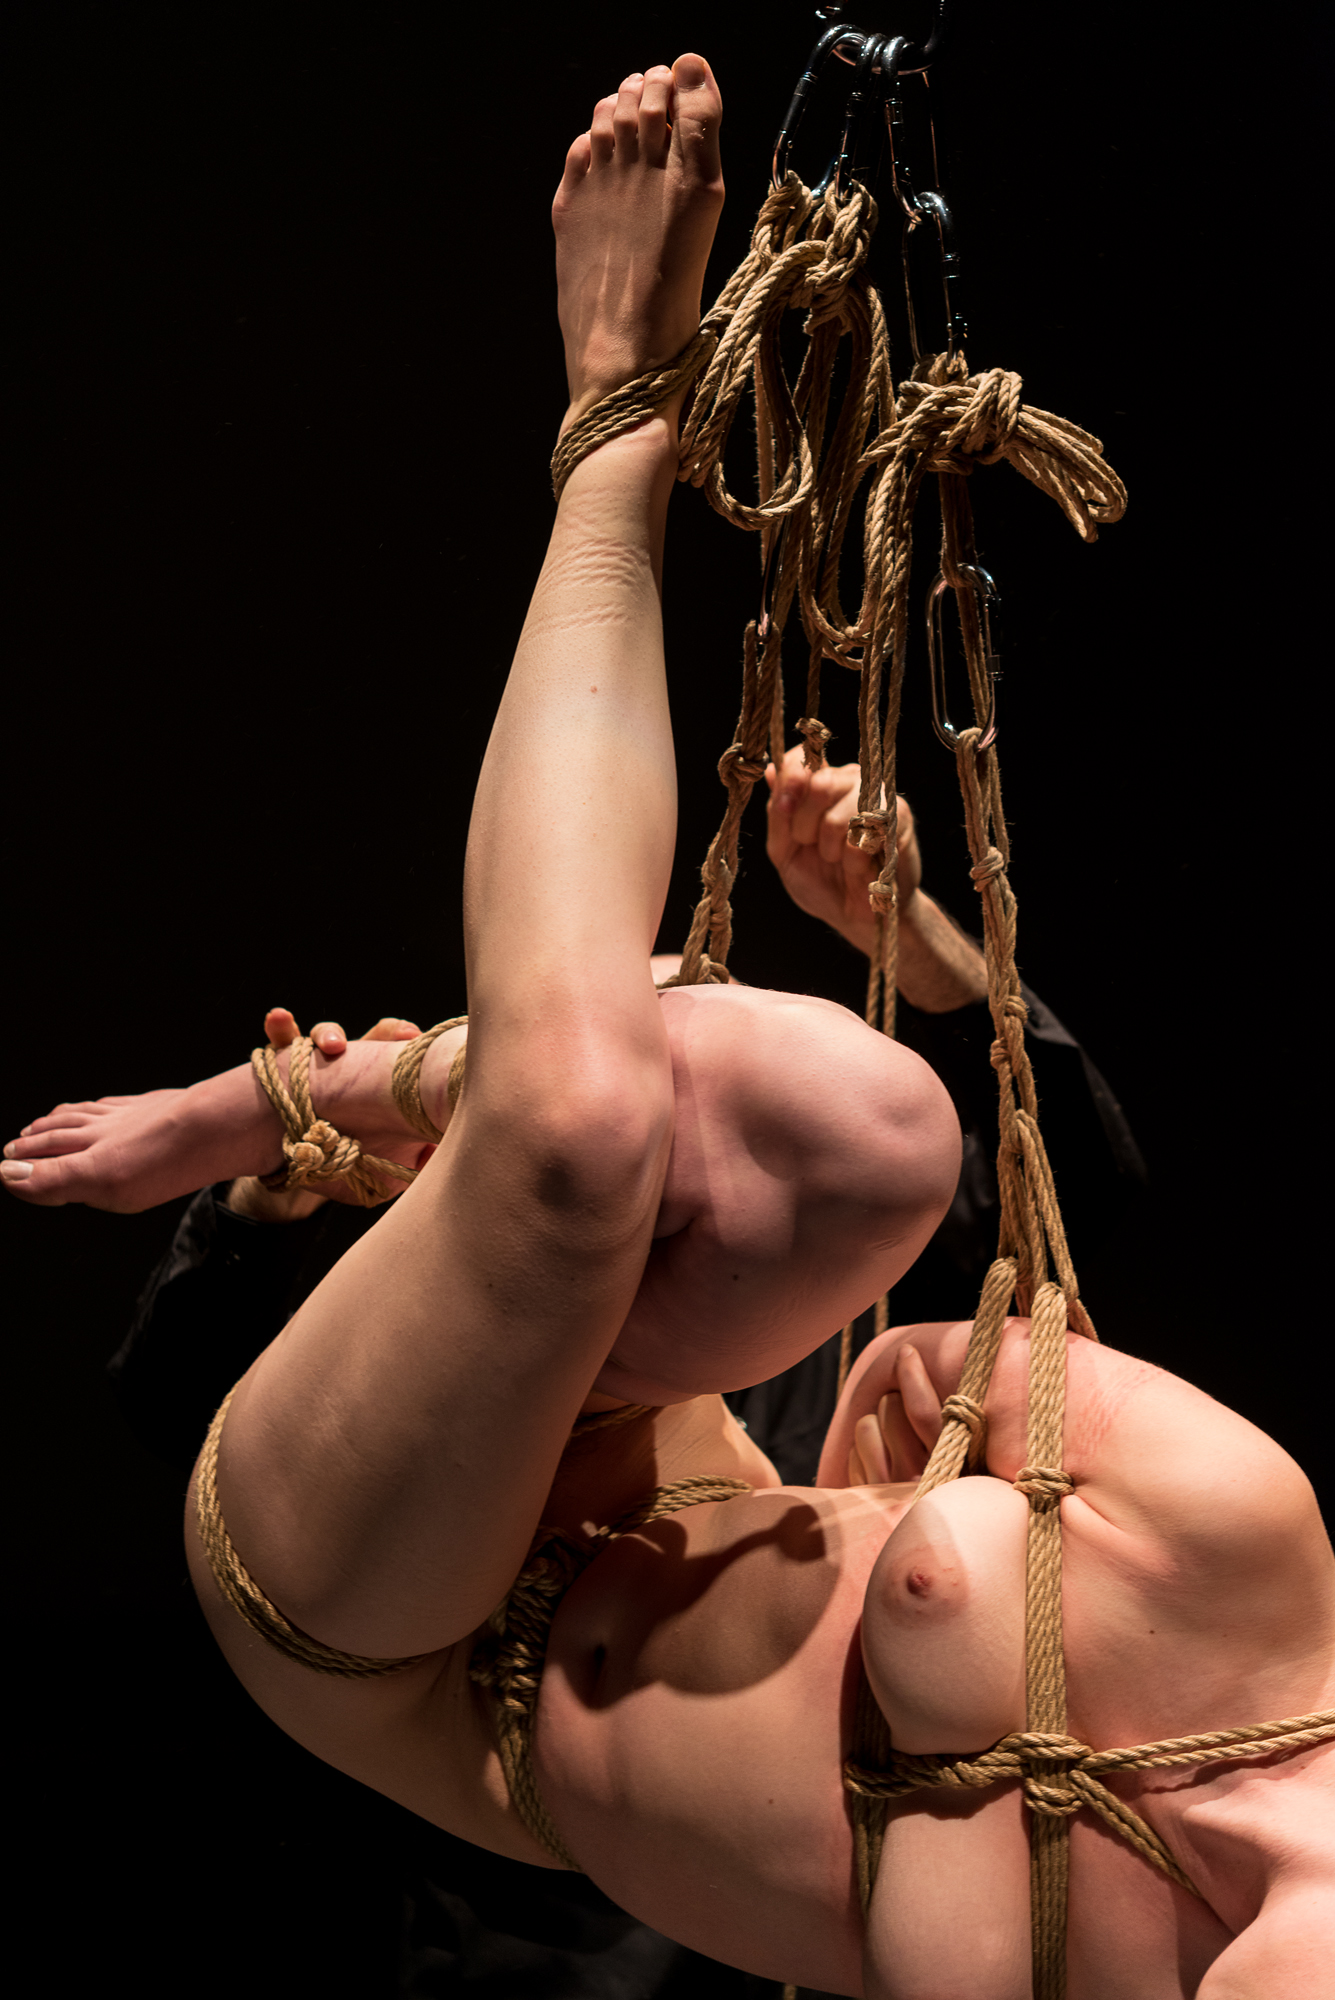 Rope details from a shibari performance by Pedro and Gestalta at Culturgest